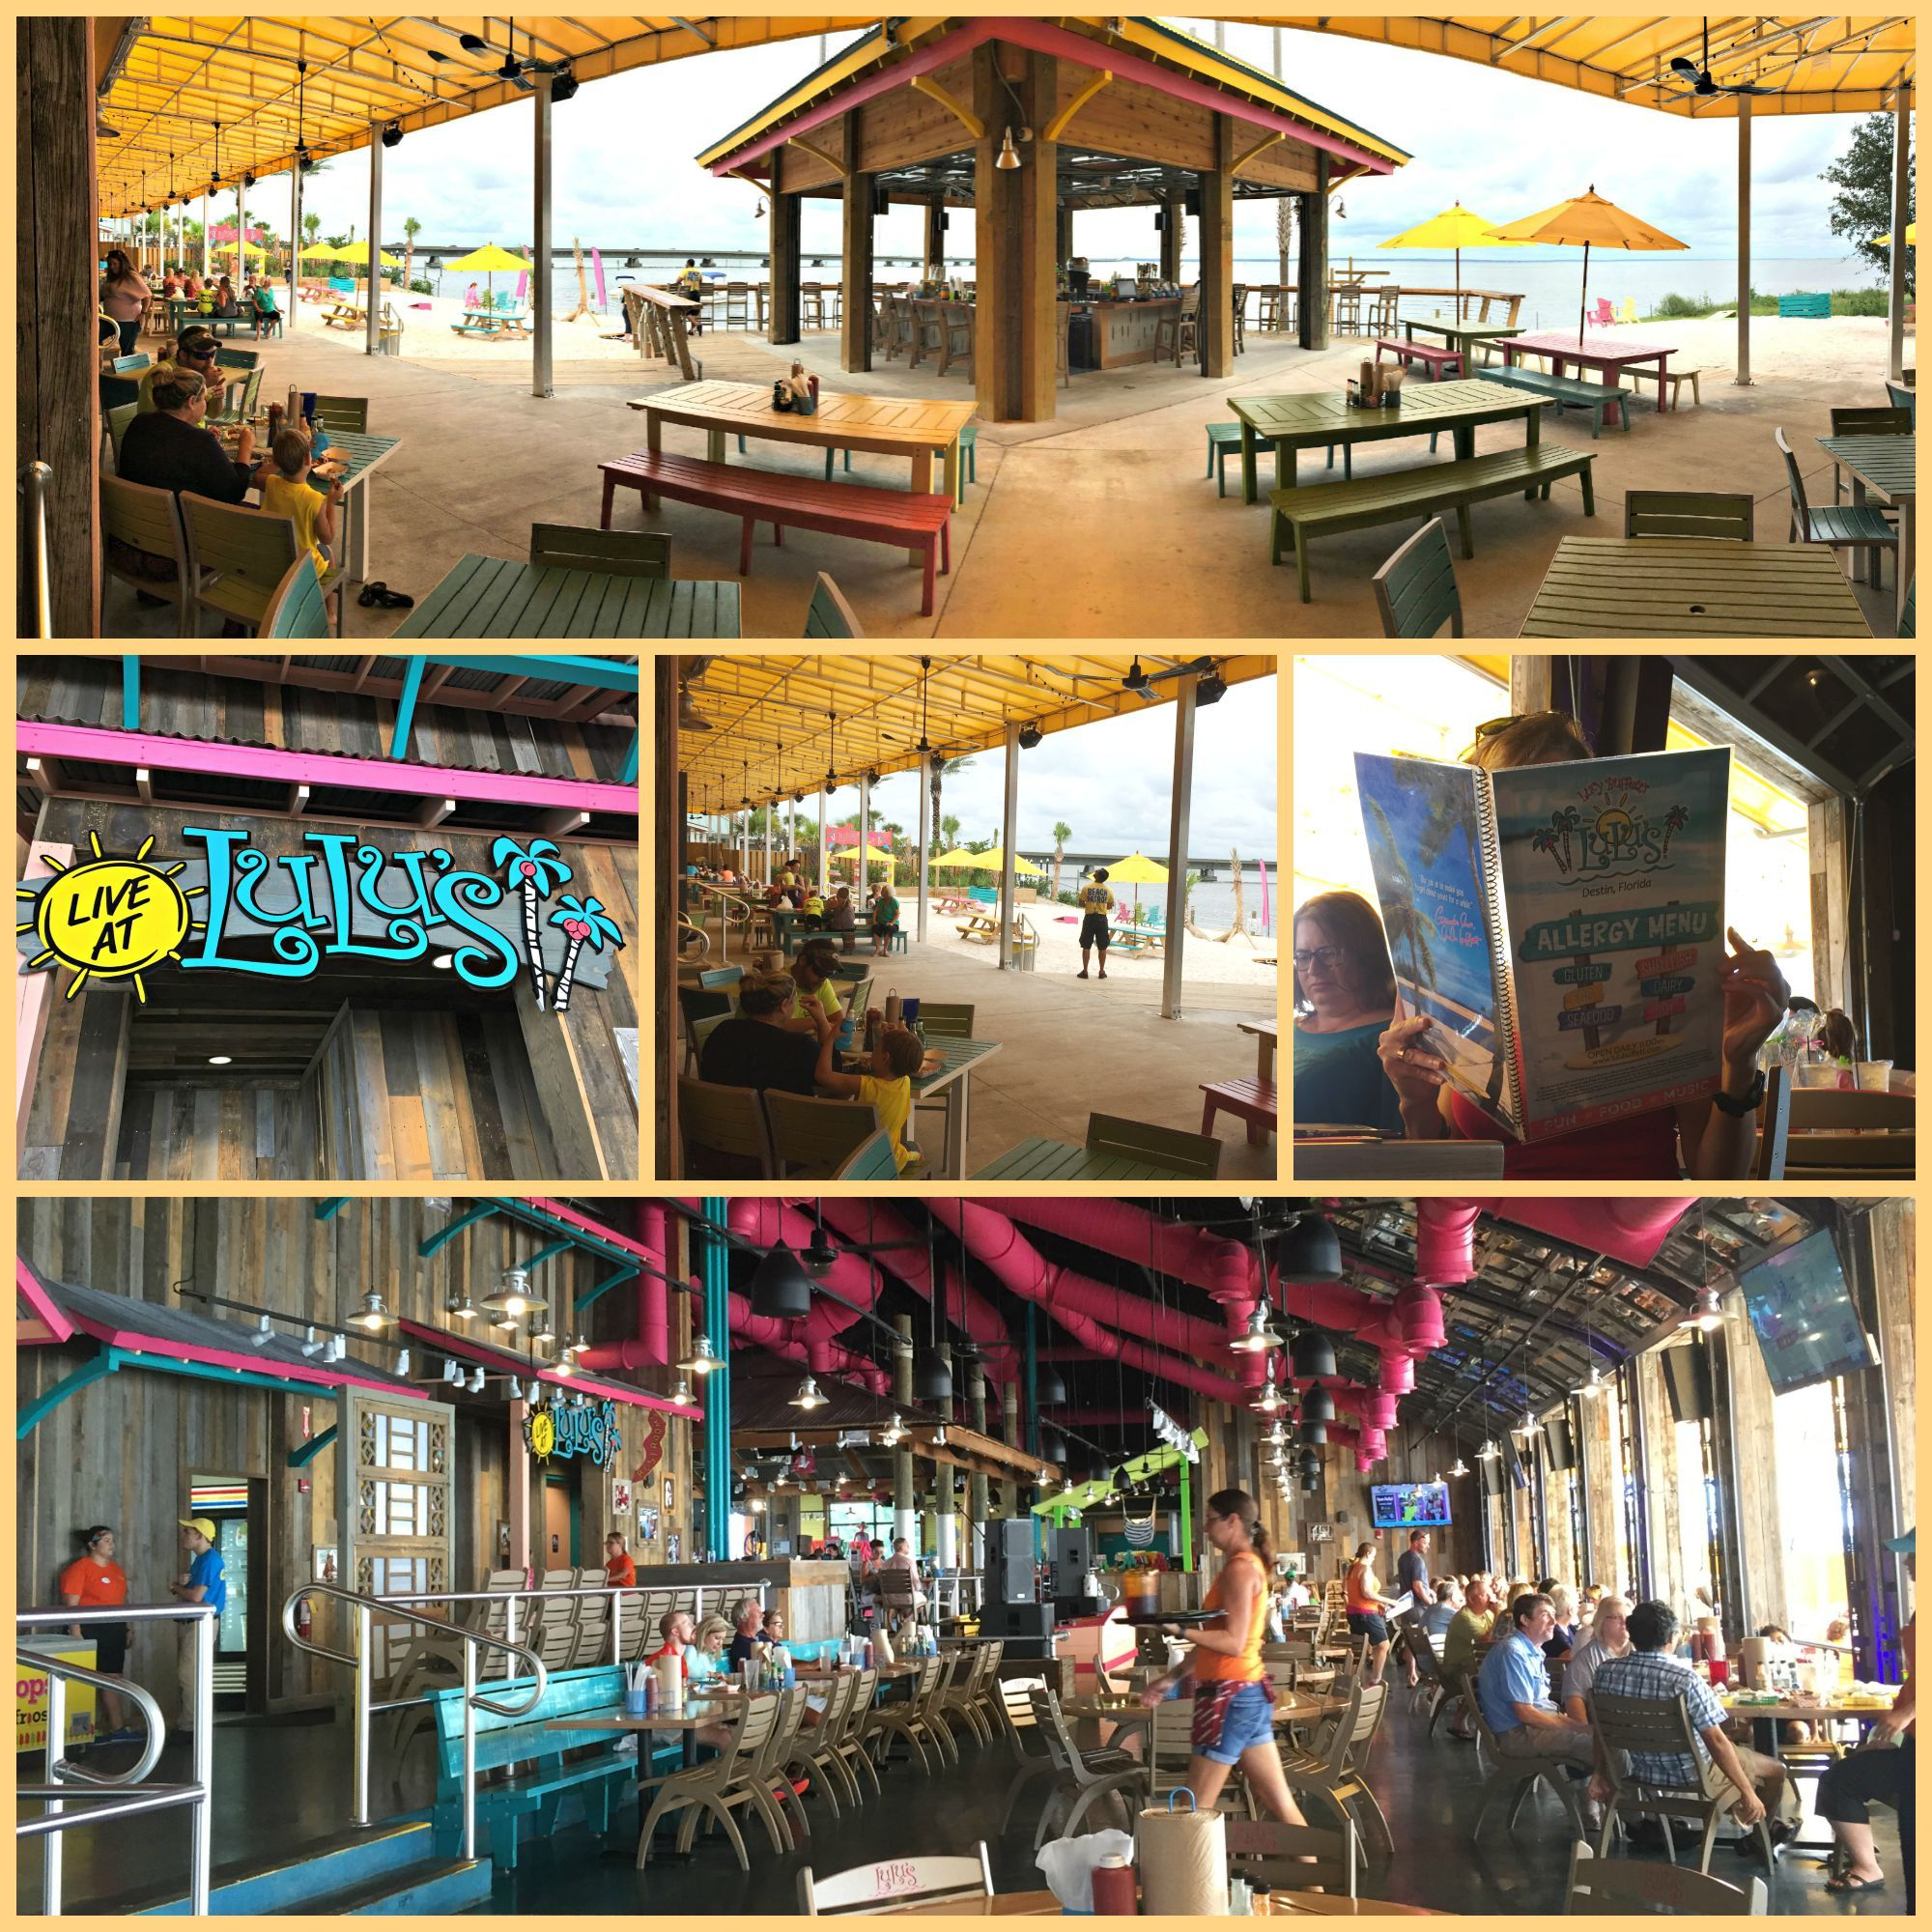 Lulu S Destin Fl Is A Family Restaurant And Entertainment Destination Live Music Splashing In The Fountain Of Youth Volleyball Nets Are Just Small